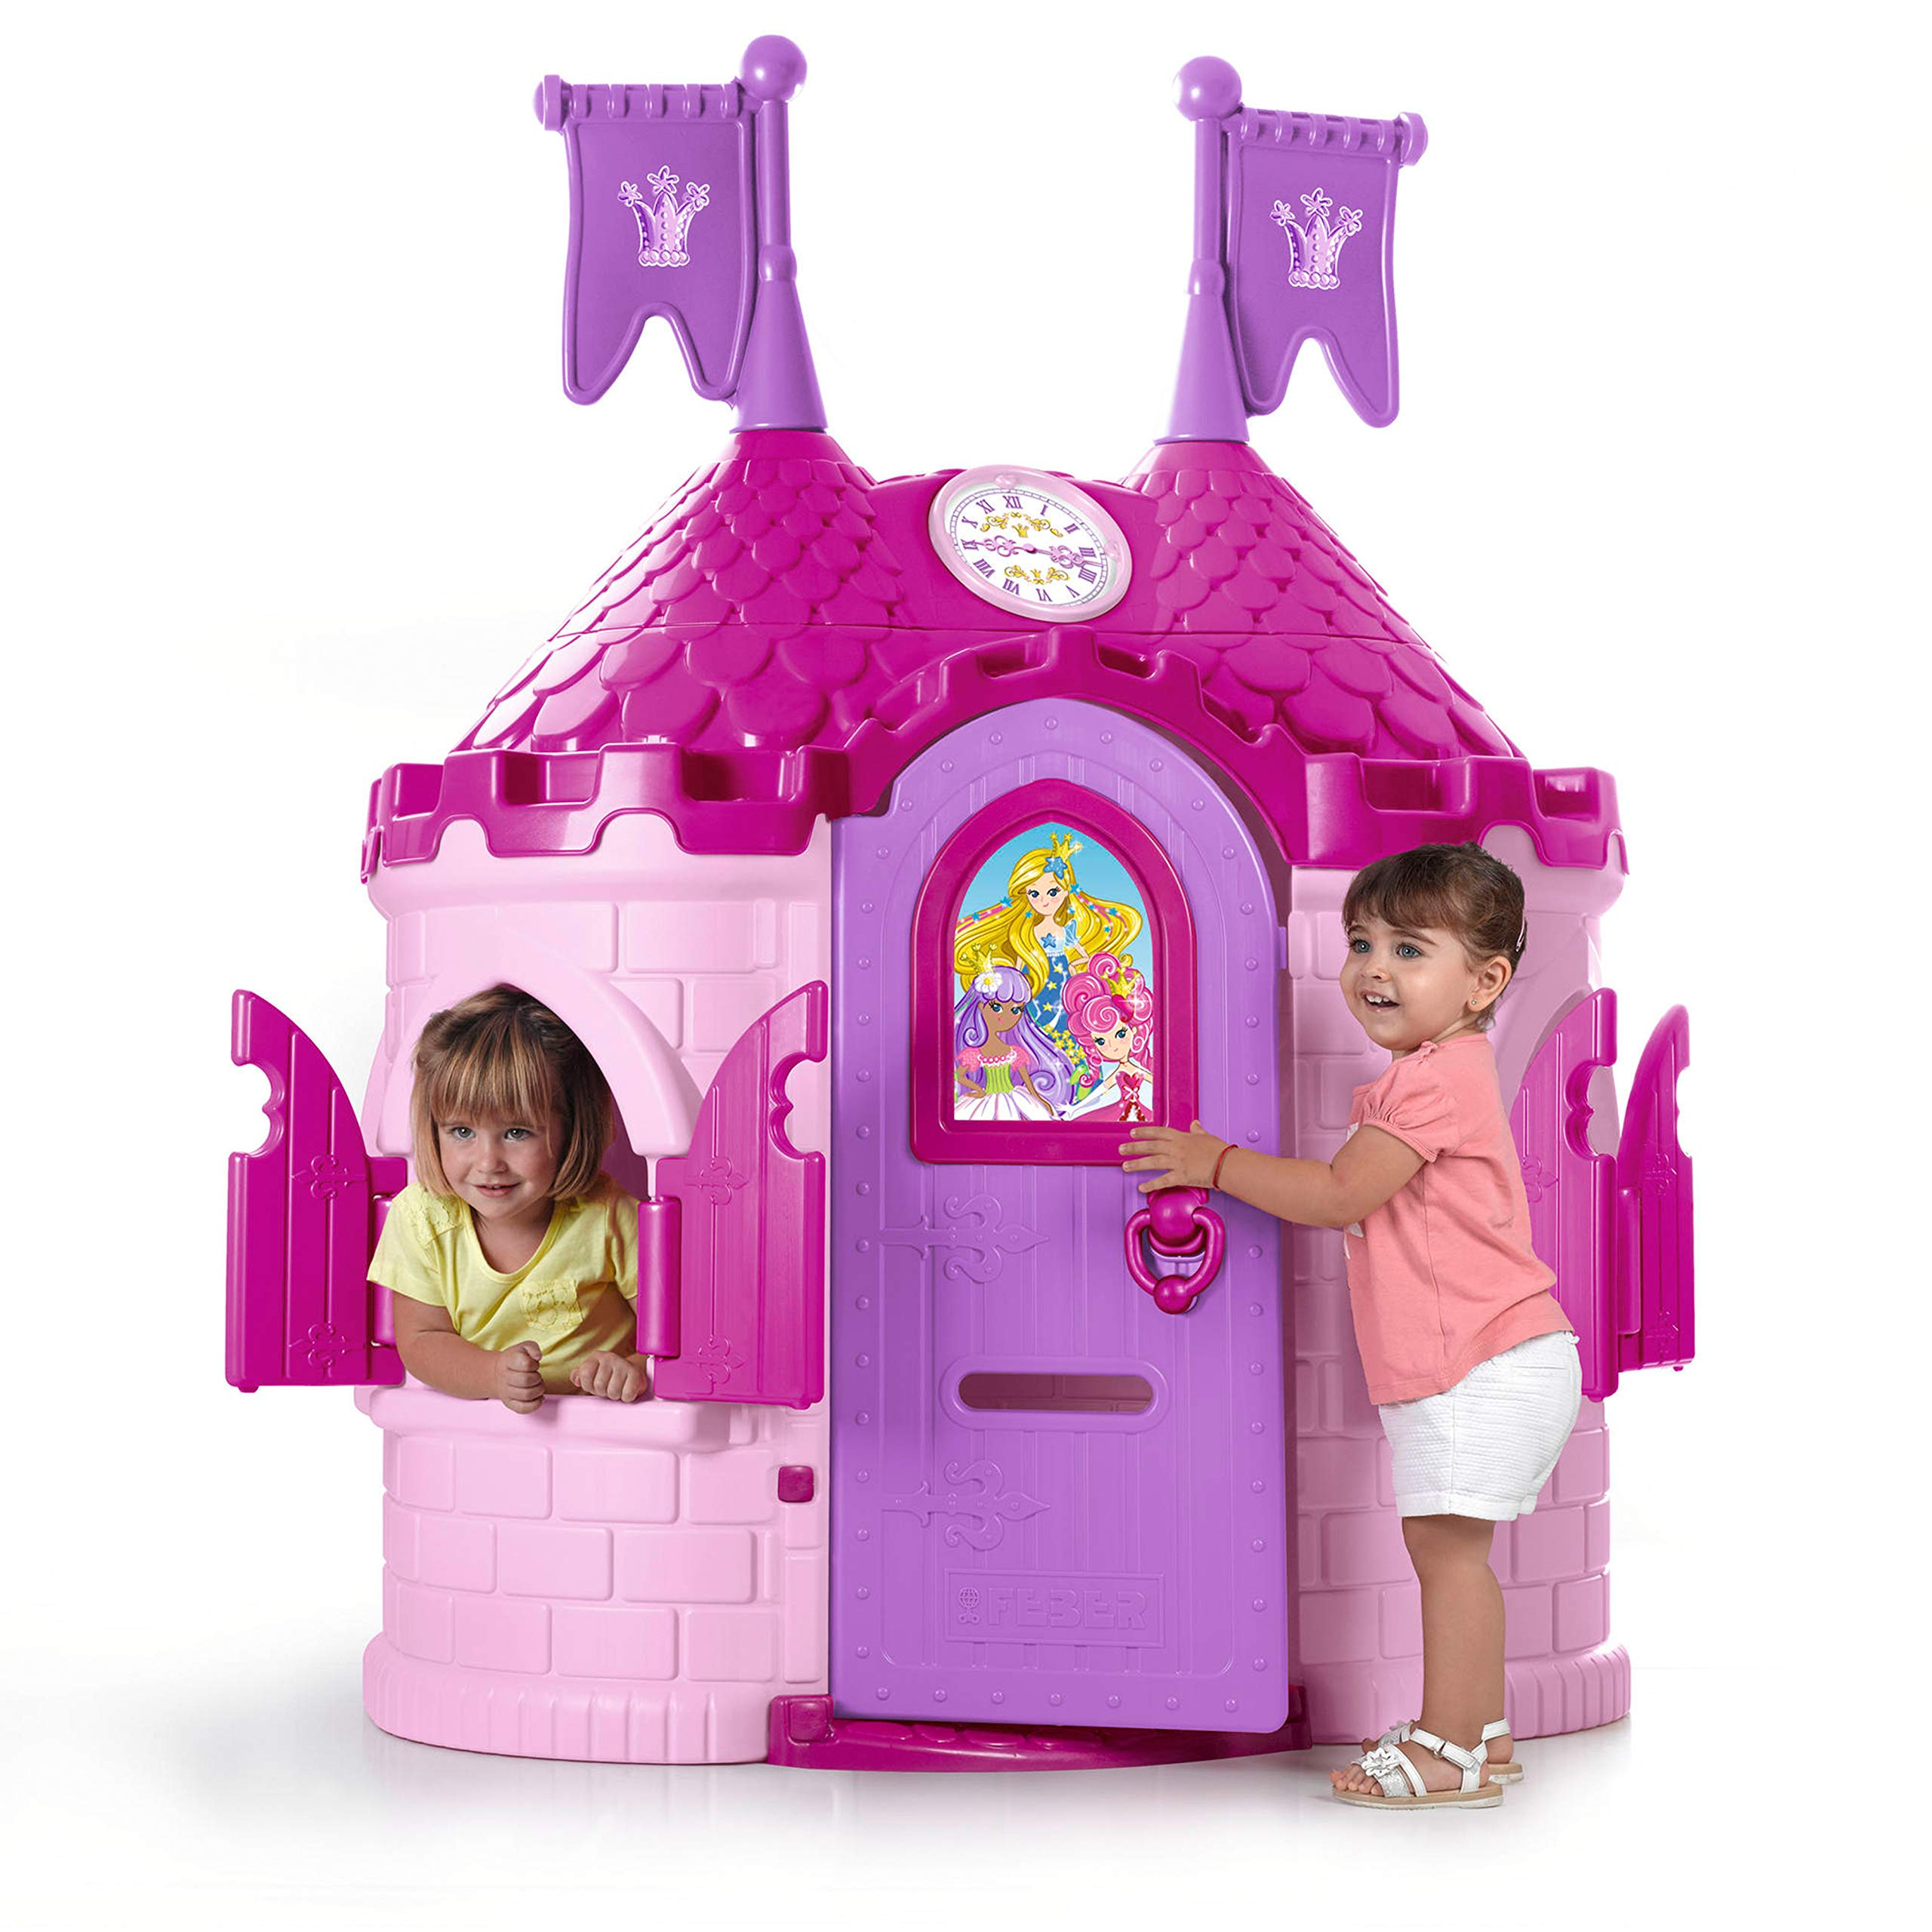 ECR4Kids Junior Princess Palace Playhouse, Pink Castle Playhouse with Working Doorbell, Full-Sized Door with Mail Slot and Shutters, Indoor or Outdoor Play, Over 6 Feet Tall by ECR4Kids